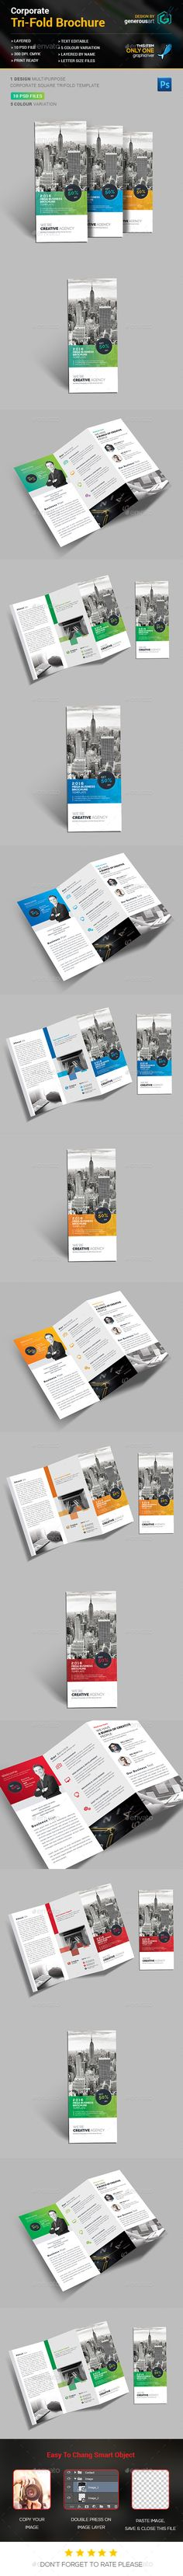 Tri-Fold Brochure Template PSD #design Download: http://graphicriver.net/item/trifold-brochure/14036264?ref=ksioks